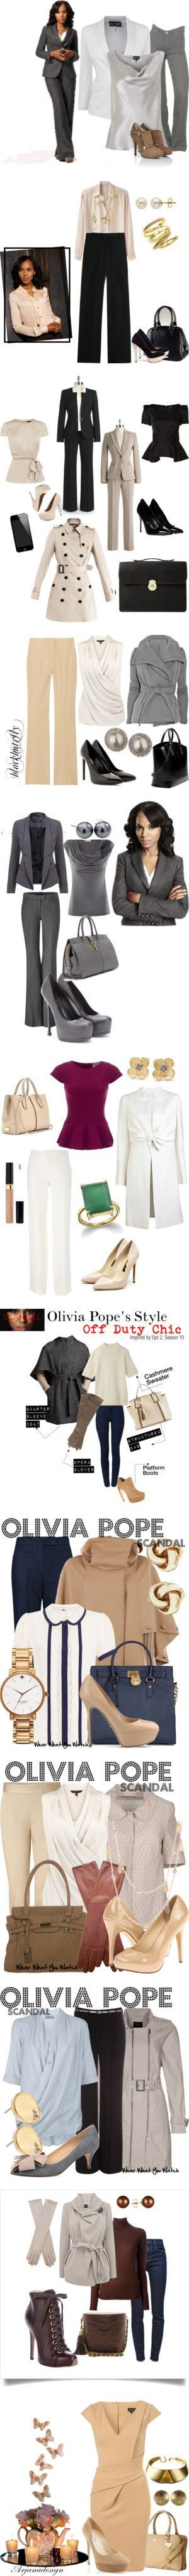 """olivia pope"" by eligdr ❤ liked on Polyvore:"